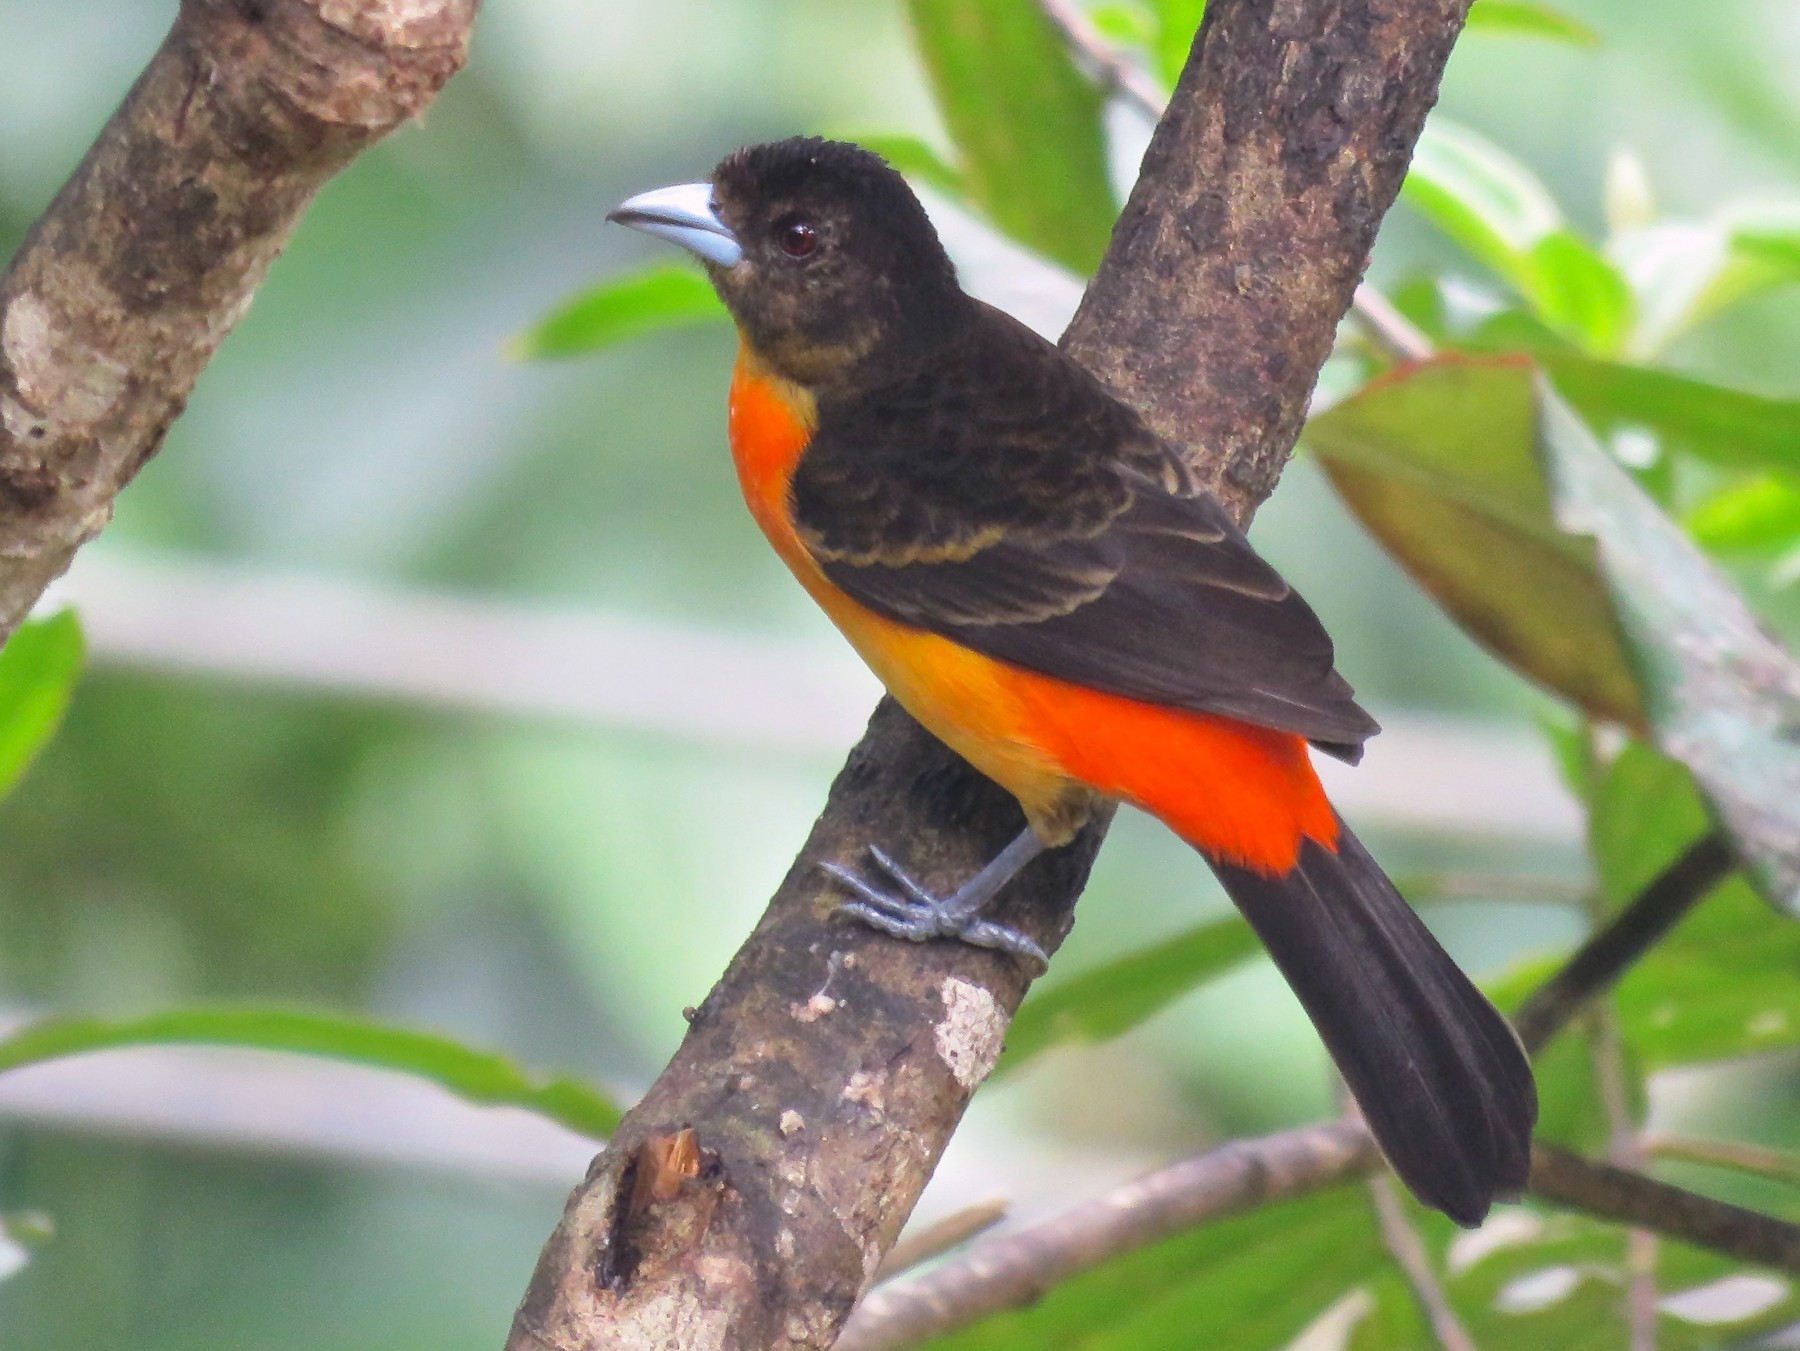 Flame-rumped Tanager - Ayde Solarte